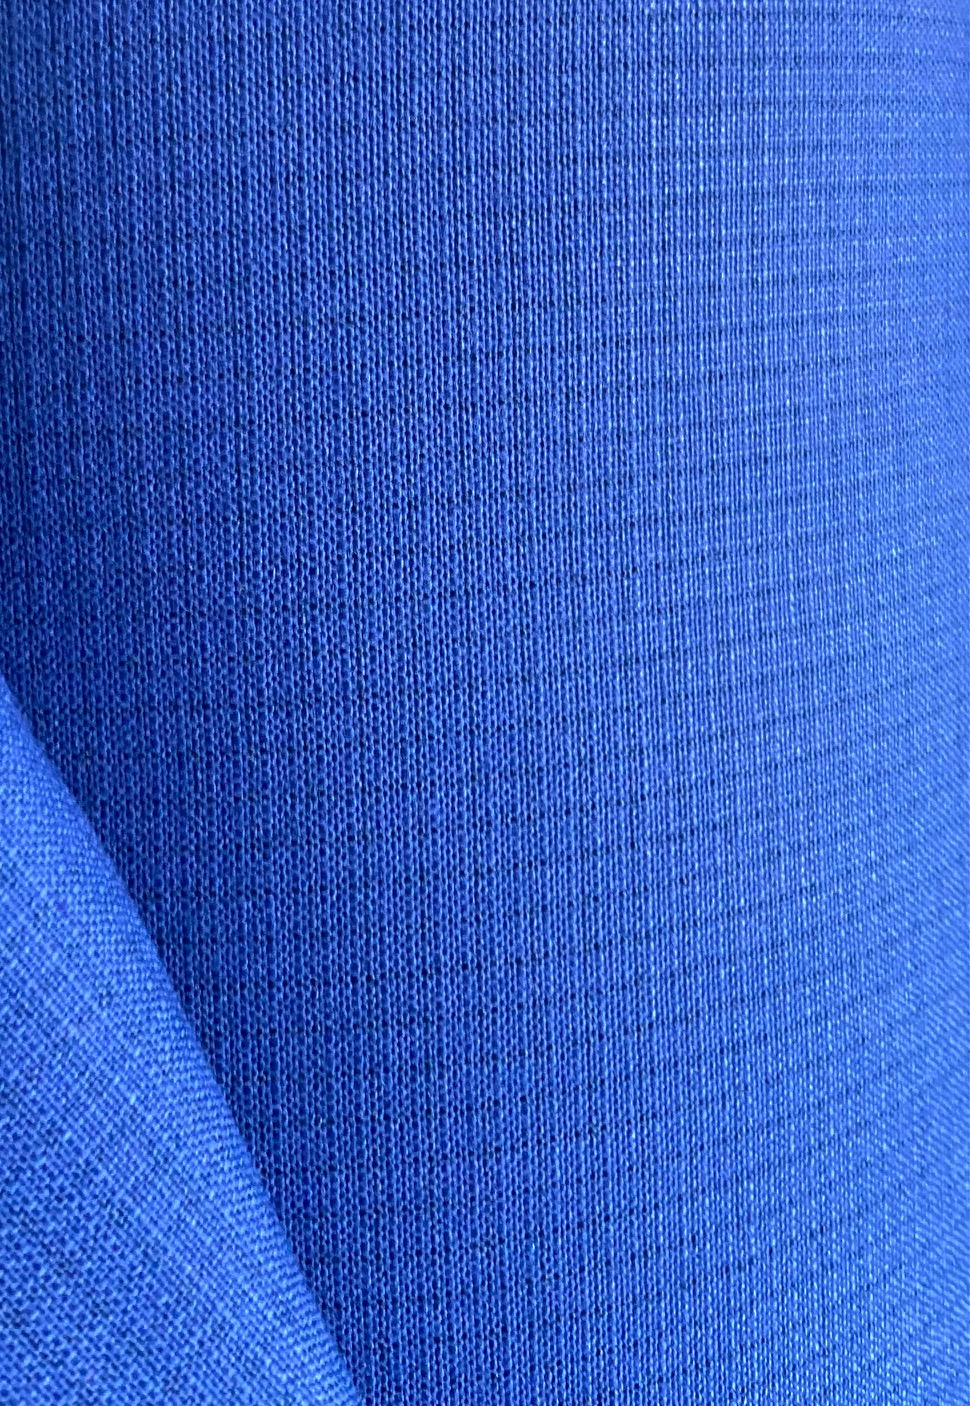 Flame retardant, Water-proof and Acid resistant Fabric. Weight 245g/m², width 150cm, Royal. Free shipping!